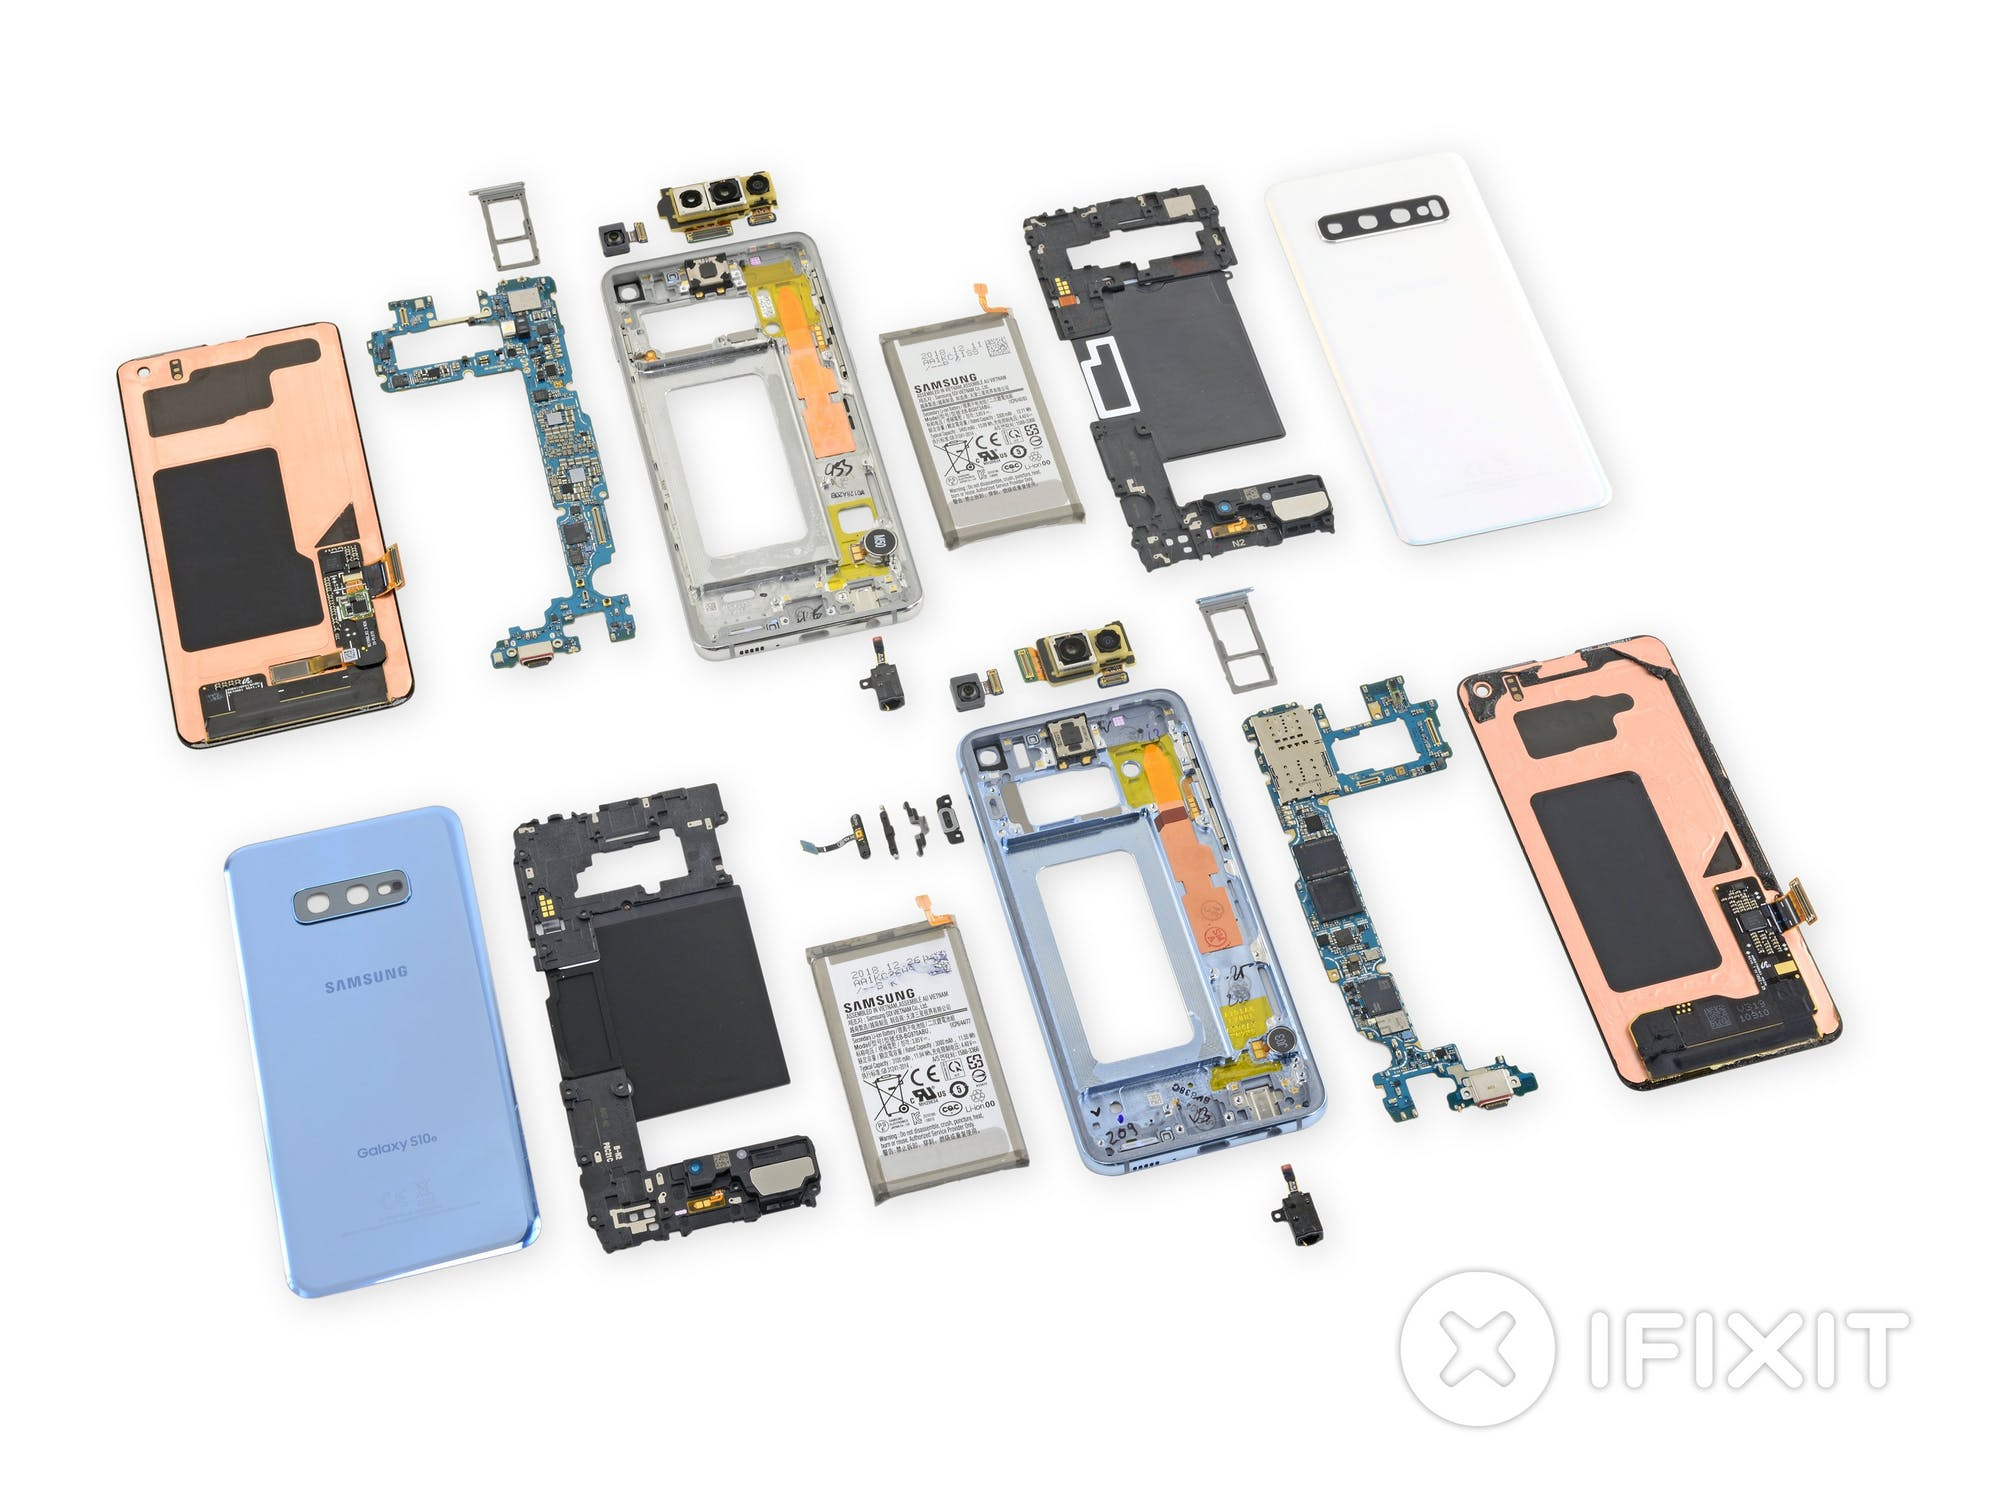 Samsung Galaxy S10 taken apart by iFixit